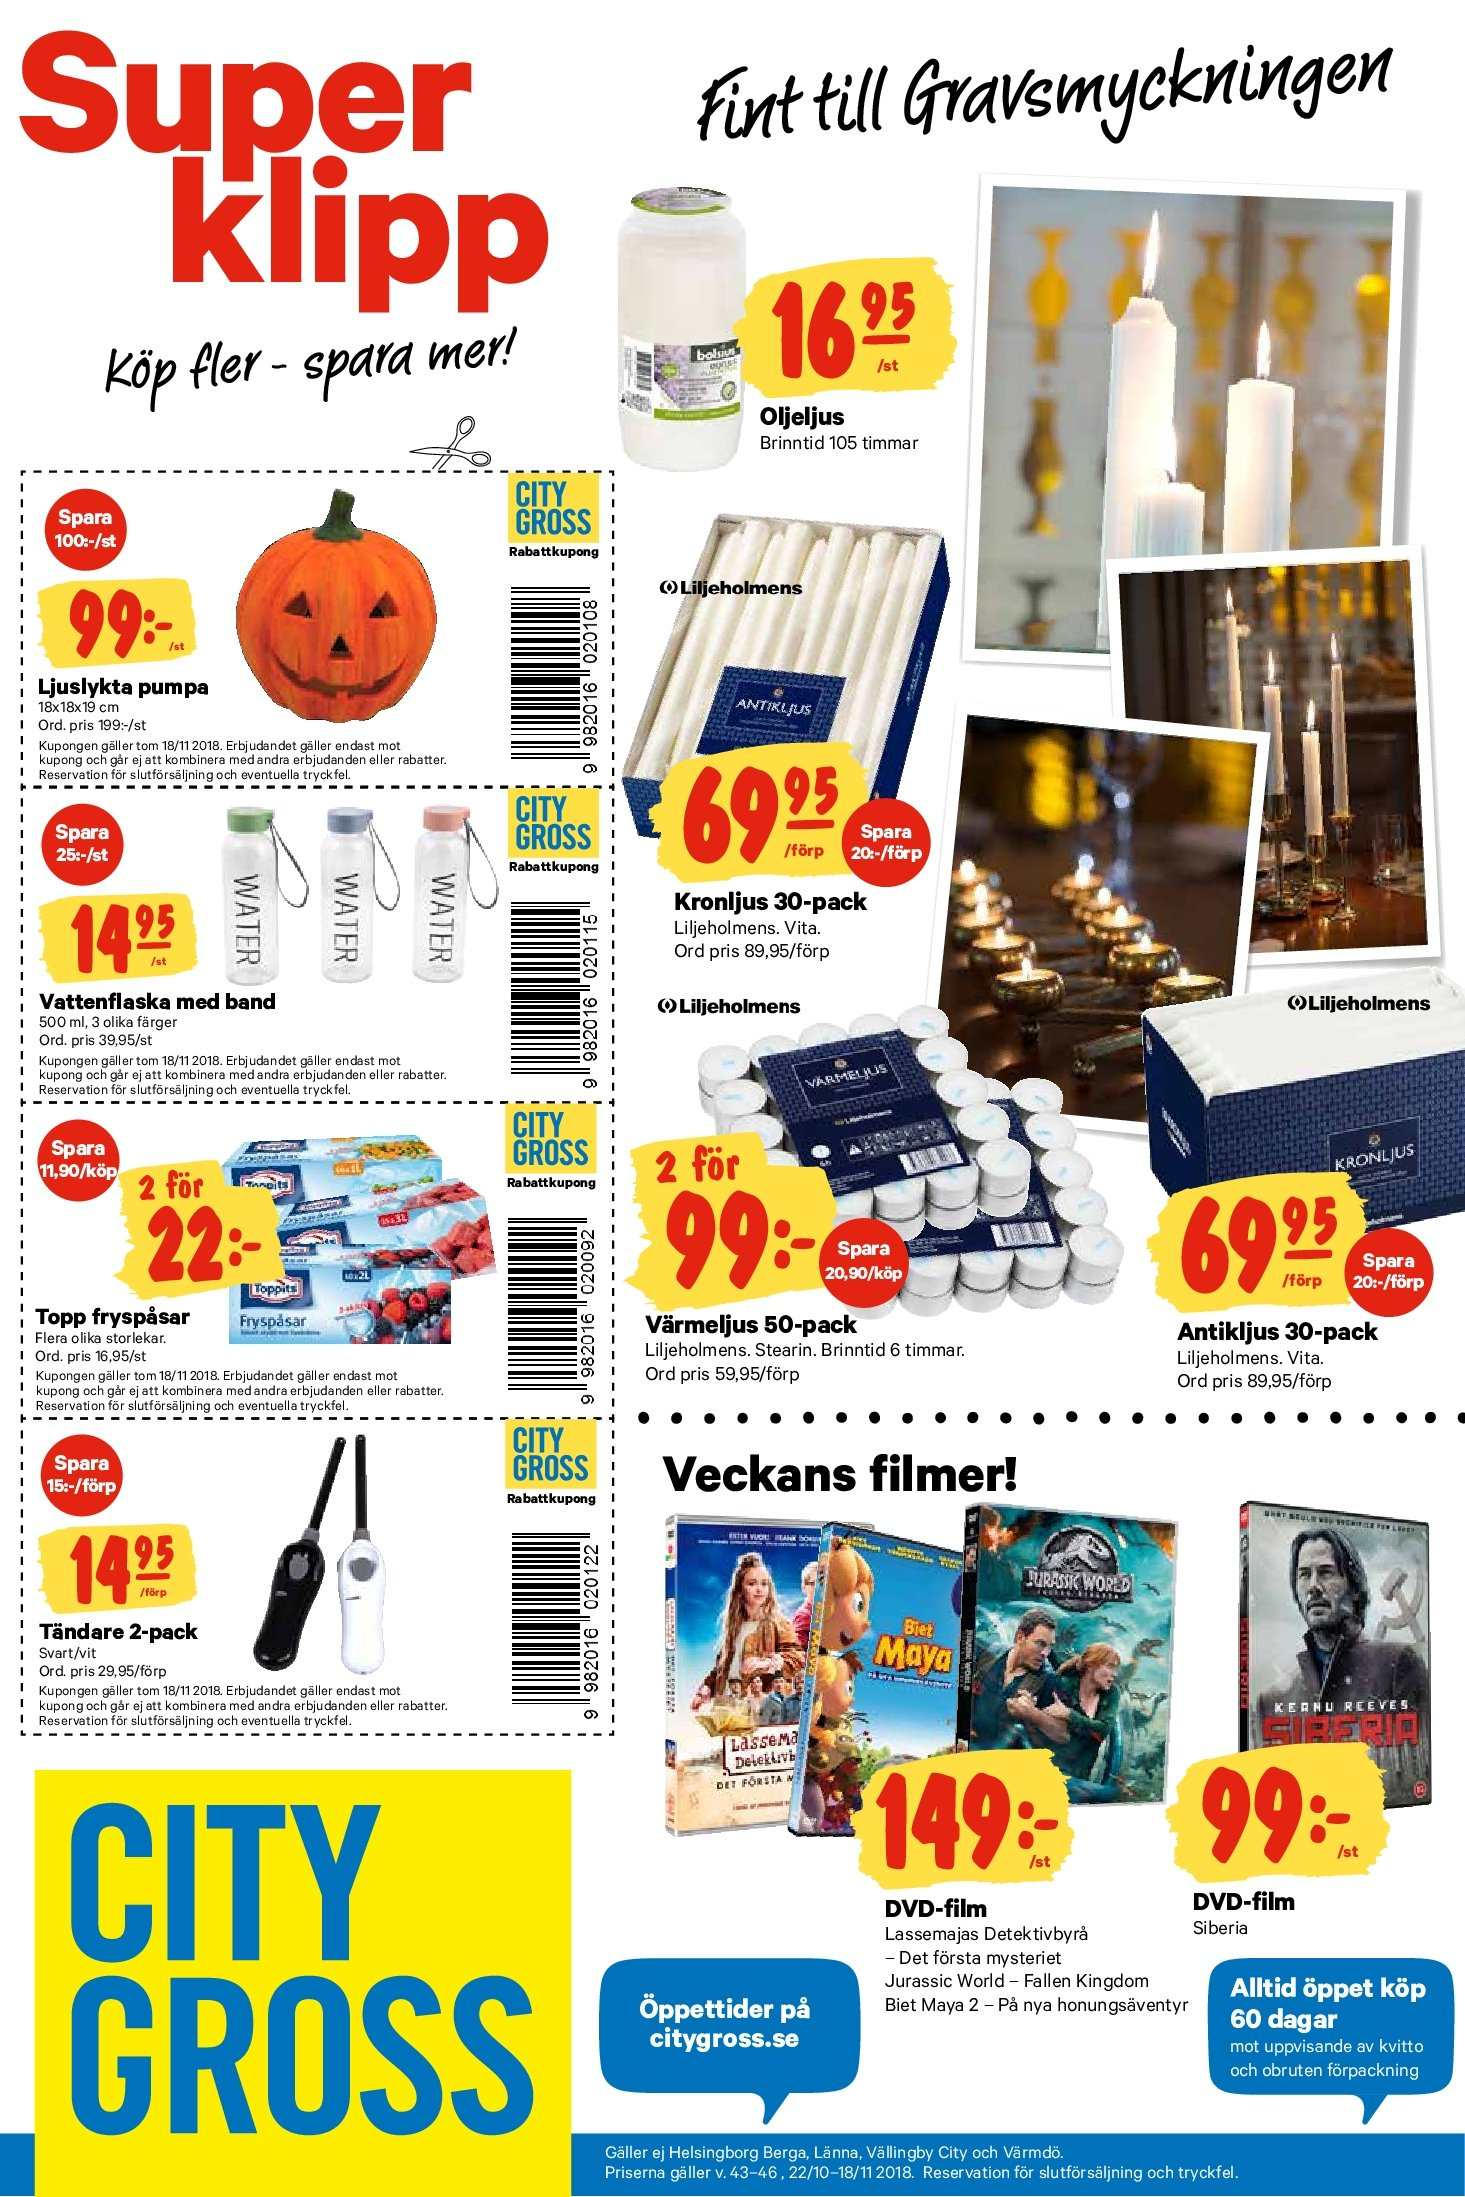 City Gross reklamblad - 22/10 2018 - 28/10 2018. Sida 17.